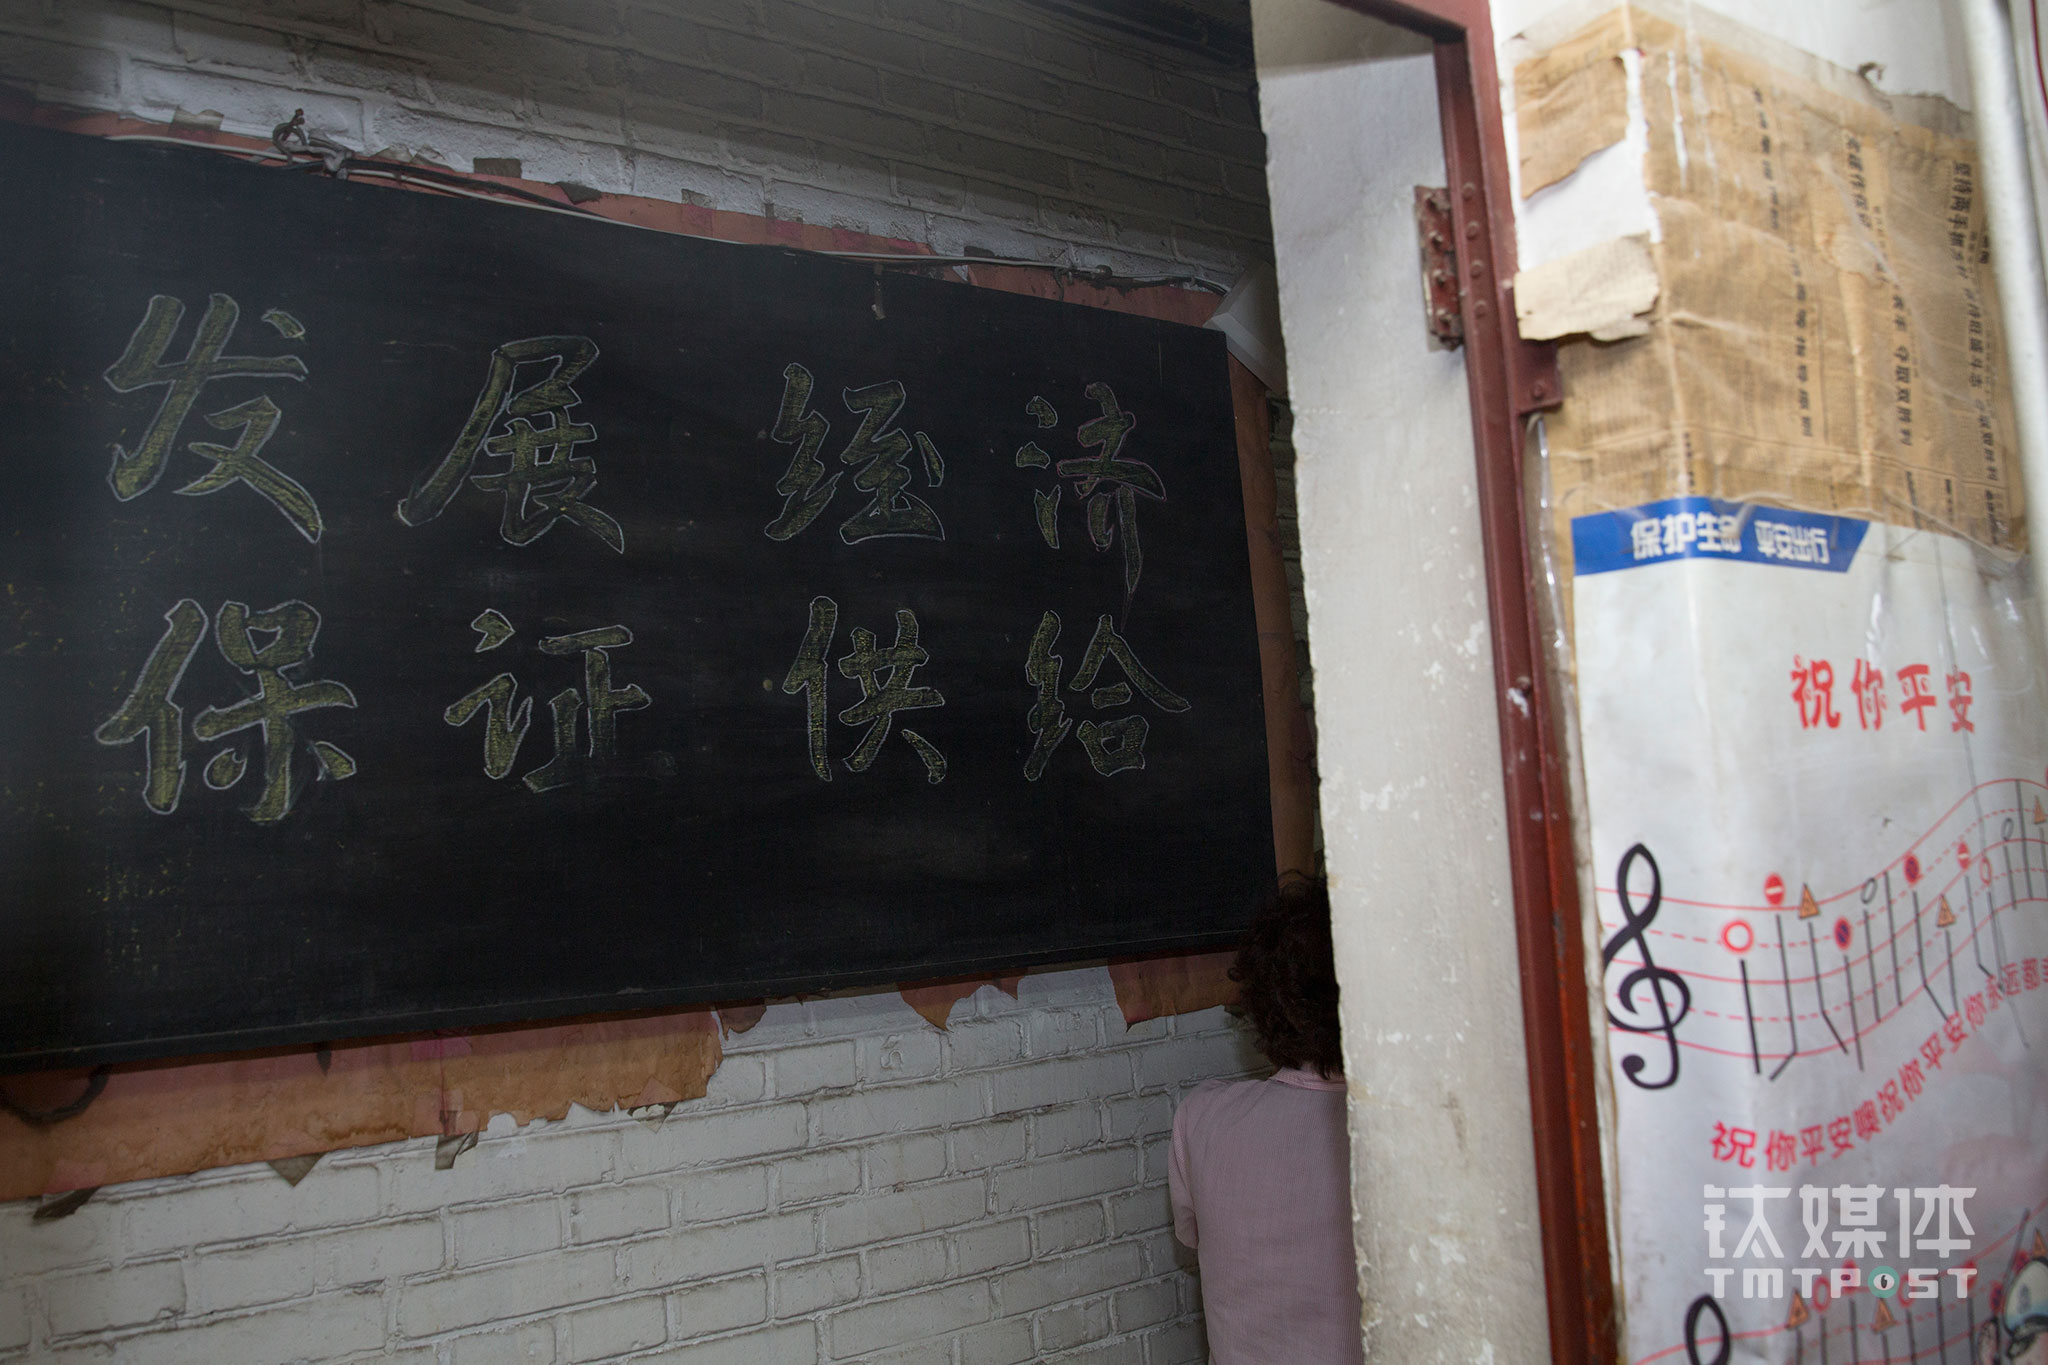 "On June 19th, 2017 at Dafang's office. On the black board it reads ""Develop the economy and ensure supply,"" a guidance brought forth by the communist party during the Anti-Japanese War. In 2003, Dafang encountered issues after the restructure. The store was blocked entirely by roadblocks from the metro line(from Beijing Station to Beijing West Station) construction project. There wasn't any customer coming in. Even frequent shoppers of Dafang started to think Dafang had closed down. In response to this issue, the staff agreed on a ""going out"" strategy. The staff took the merchandise from their sections to sell at government departments, hospitals, and even at their home. They even loaded merchandise to a trolley and started to sell them in front of the August First Film Studio. For six months, not a single customer walked into Dafang, but Dafang survived because of the staff's efforts."